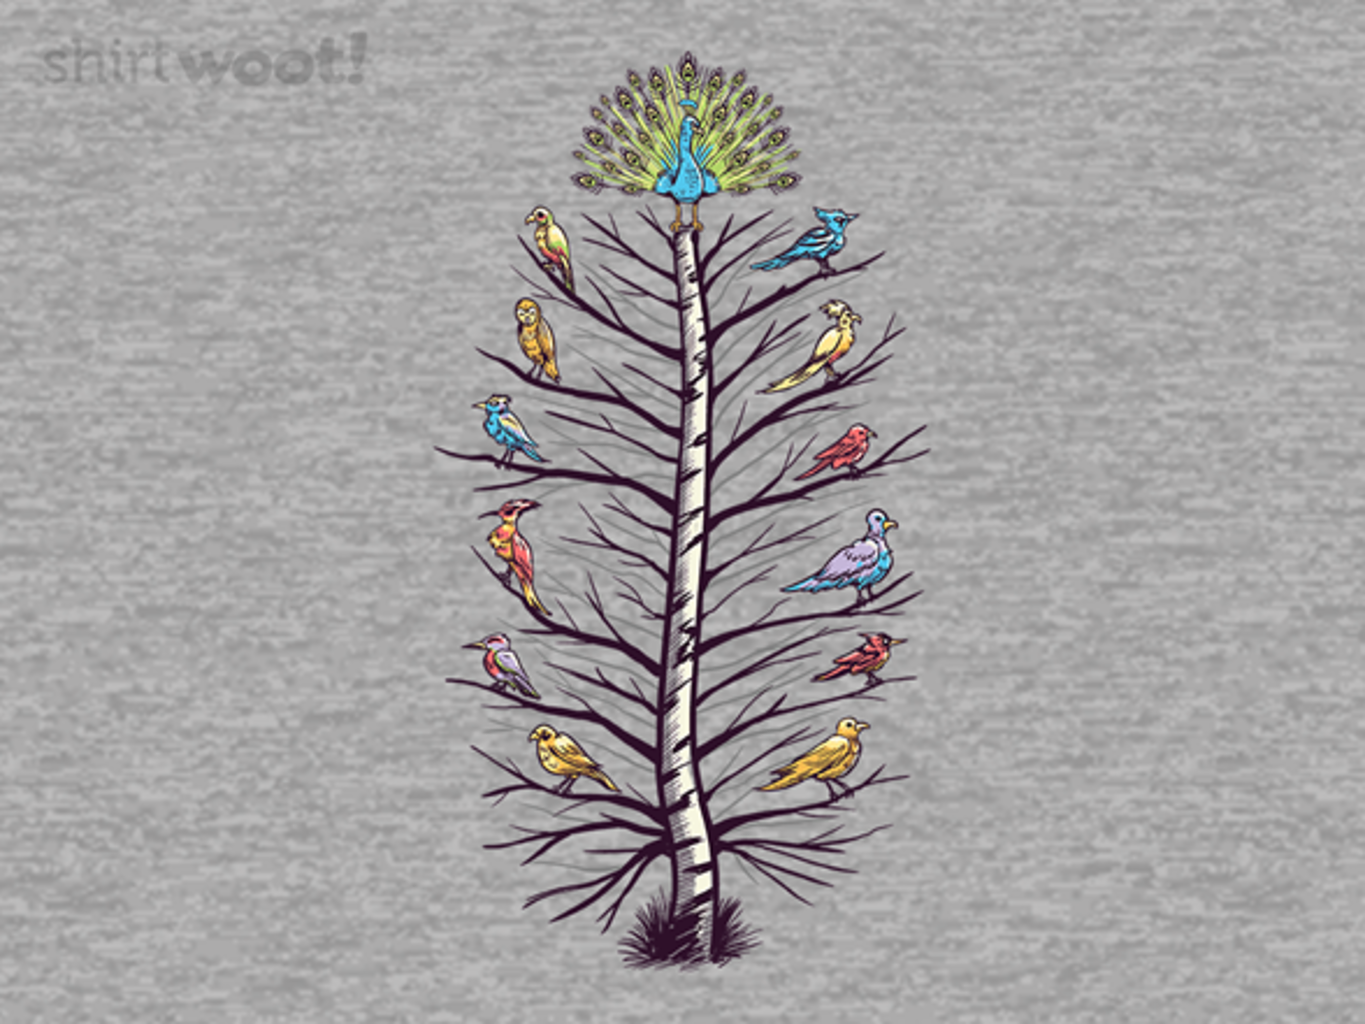 Woot!: Feather of Birds